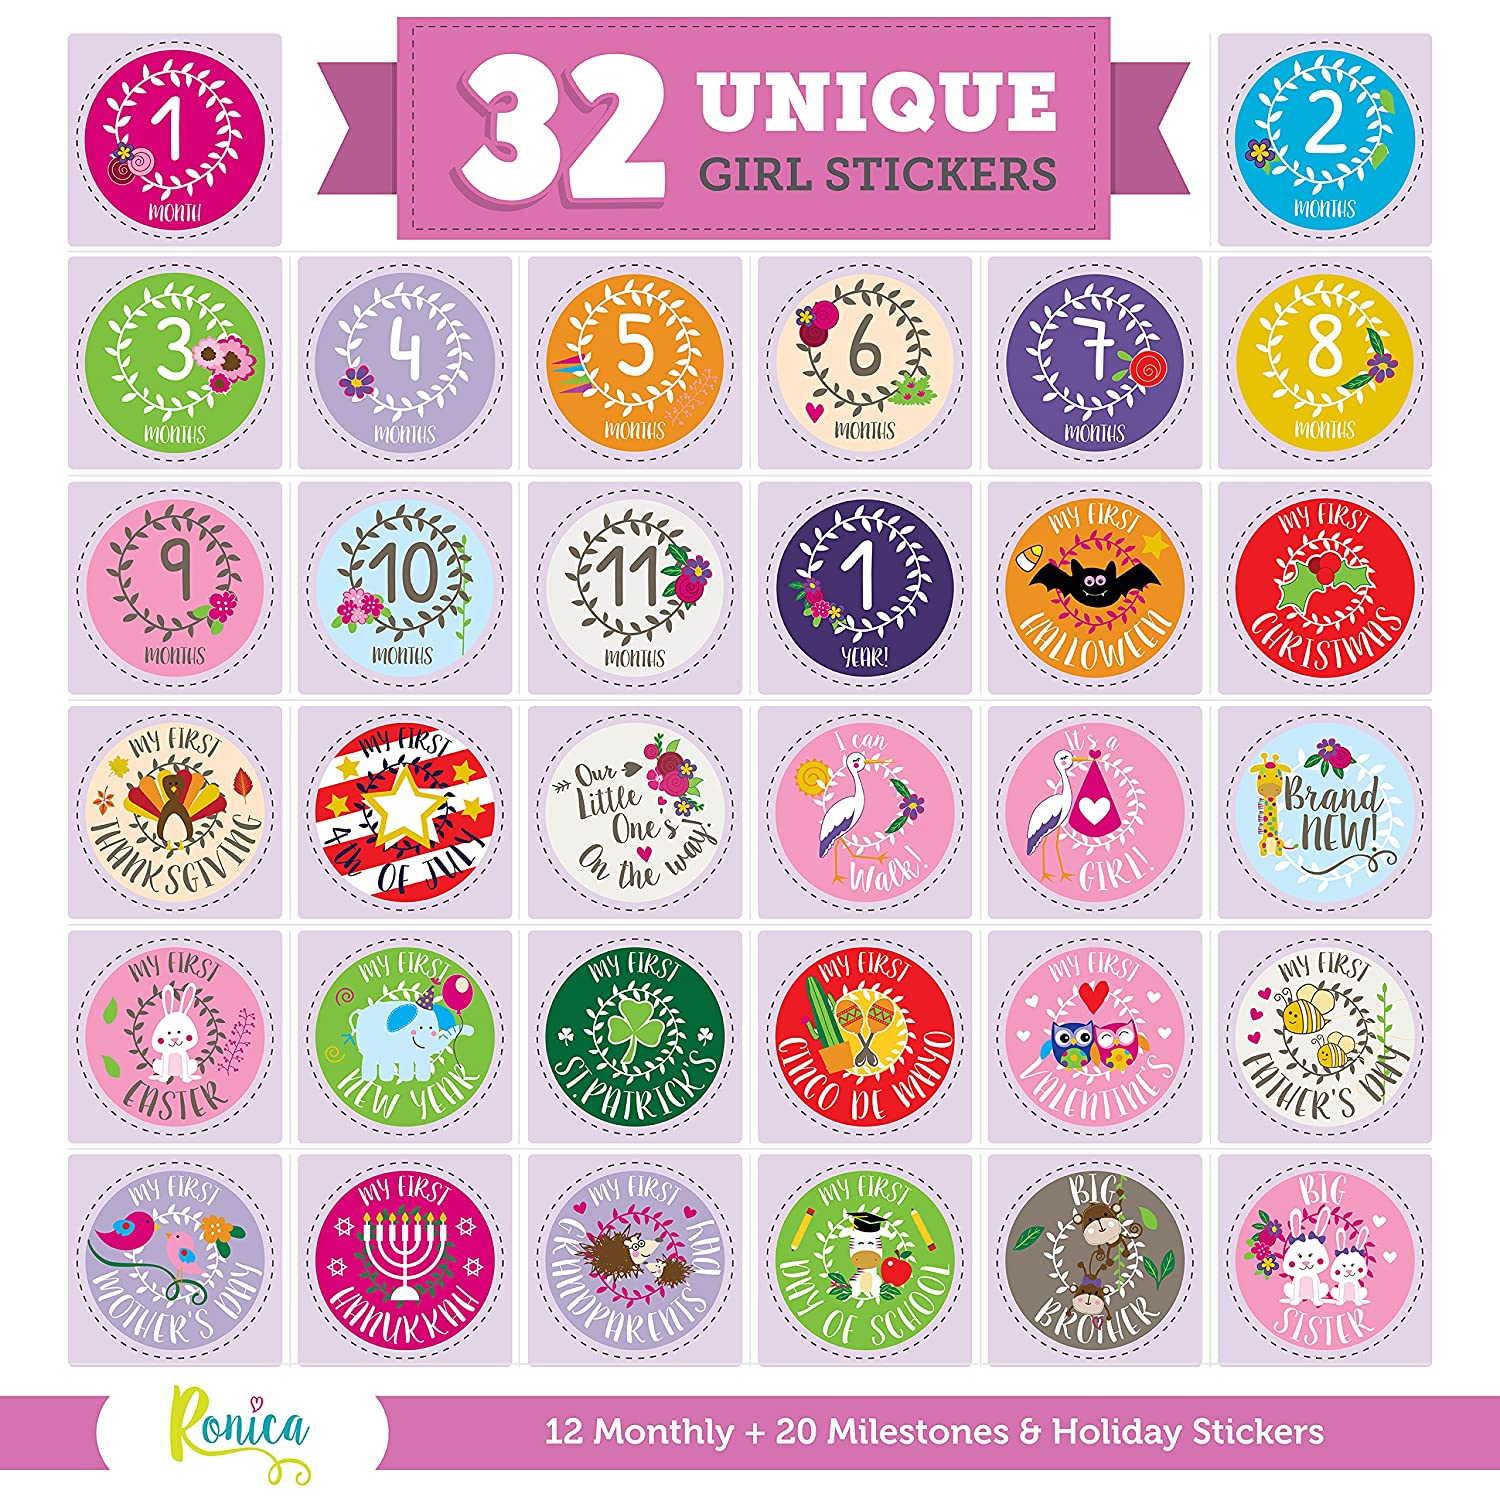 Massive Pack of 32 Ronica Baby Girl Stickers: 12 Baby Monthly Stickers + 20 Popular Milestones Baby Stickers - Record Your Baby's Growth, Holidays and Special Firsts - Unique Baby Gifts 6.47904E+11